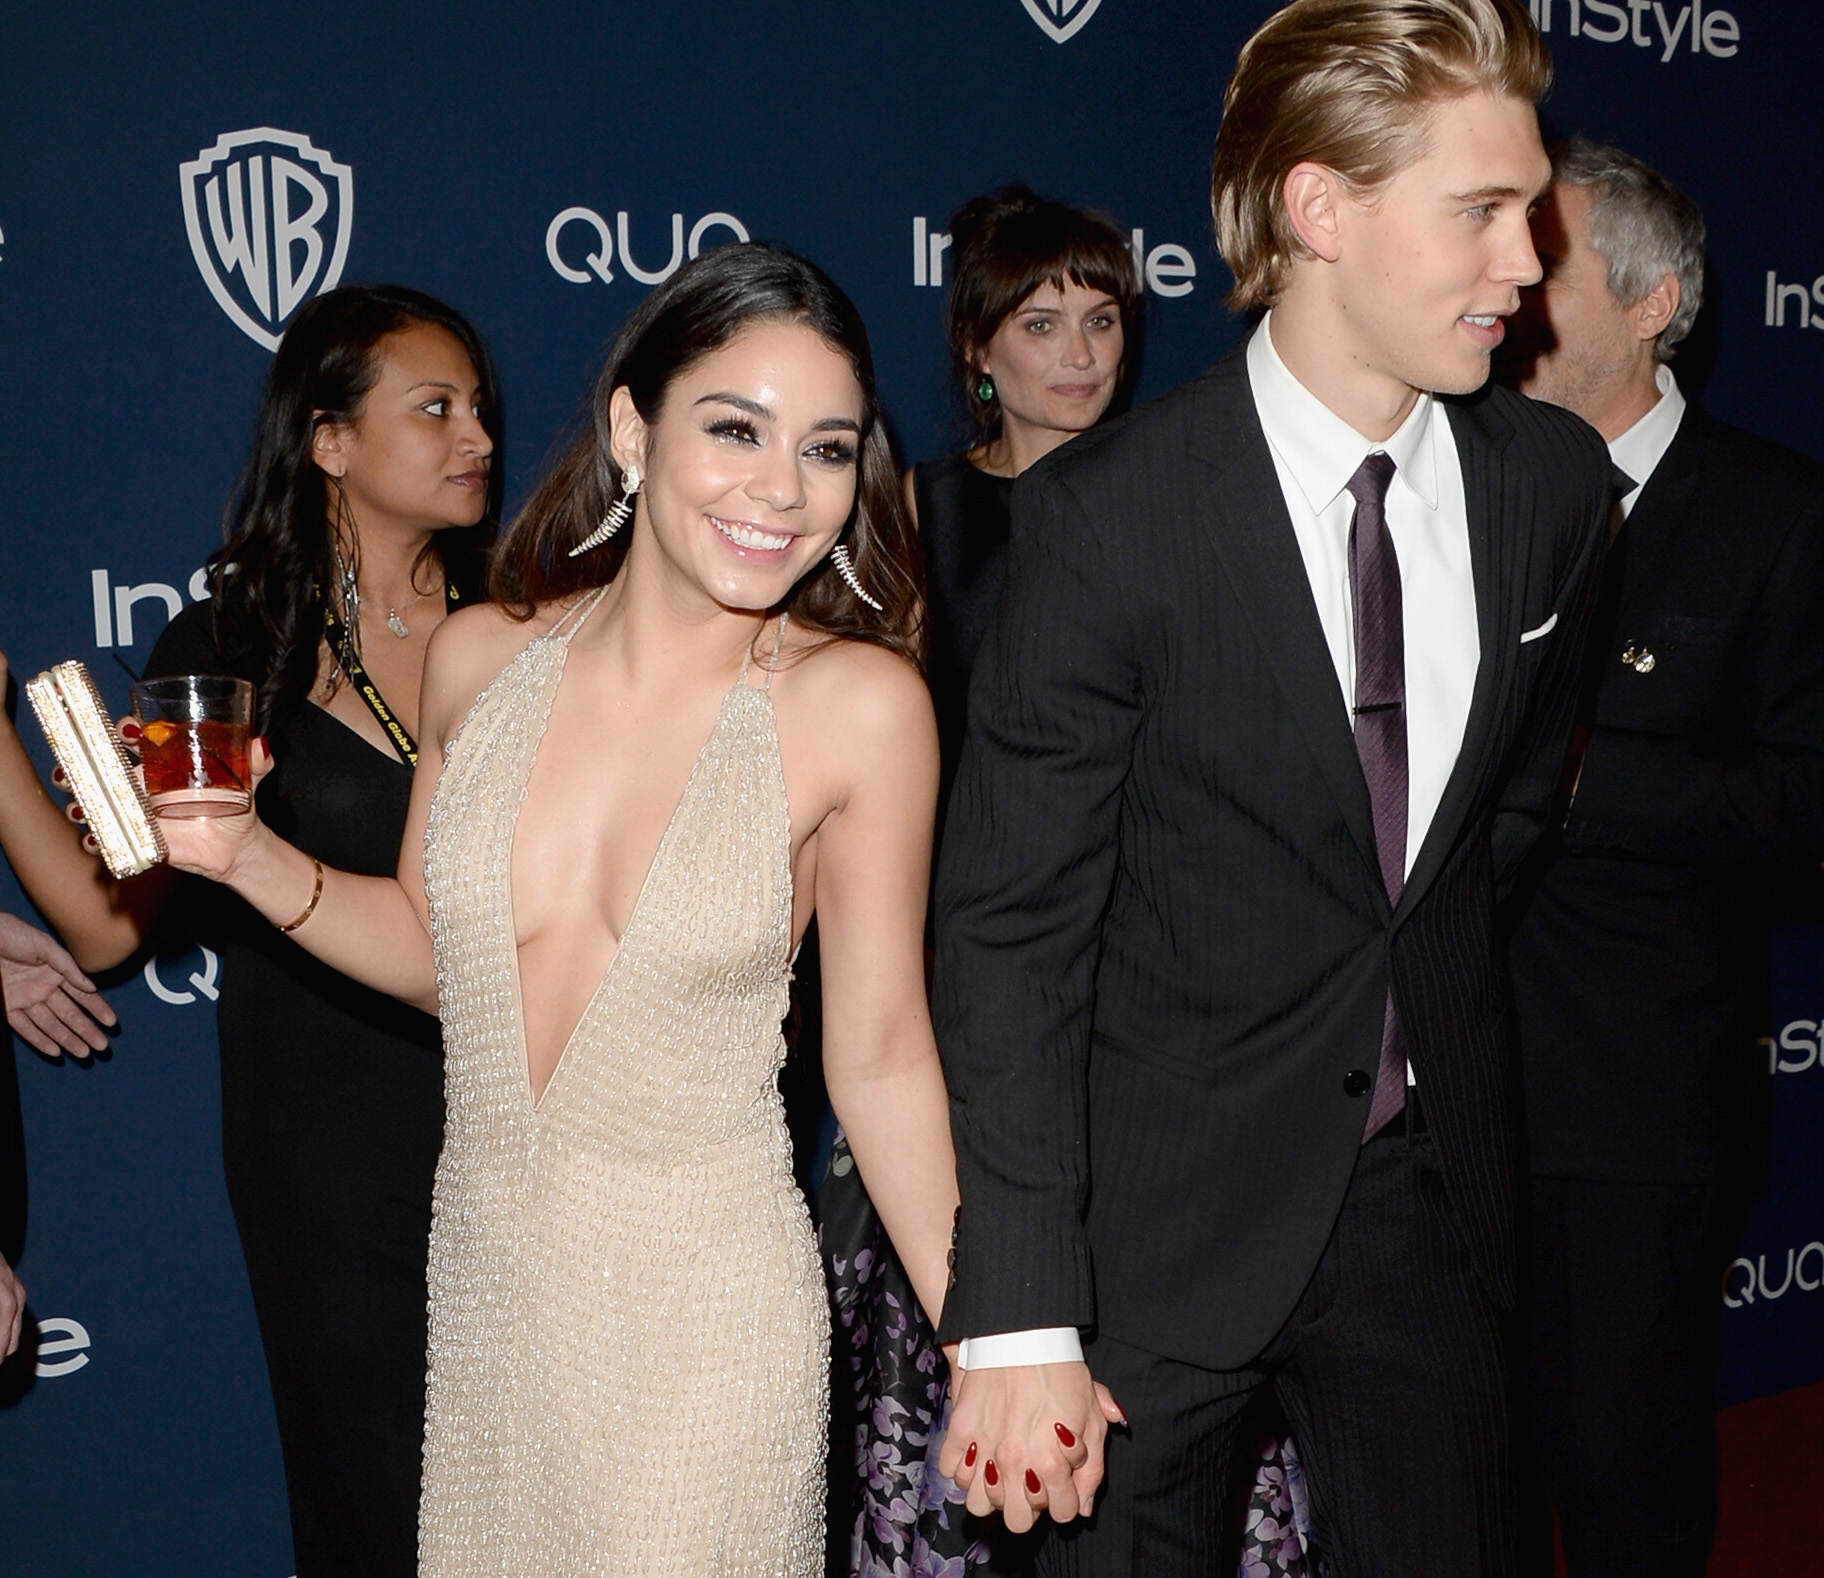 Vanessa Hudgens Fined For Public Display Of Affection vanessa hudgens austin butler 02 getty rdy